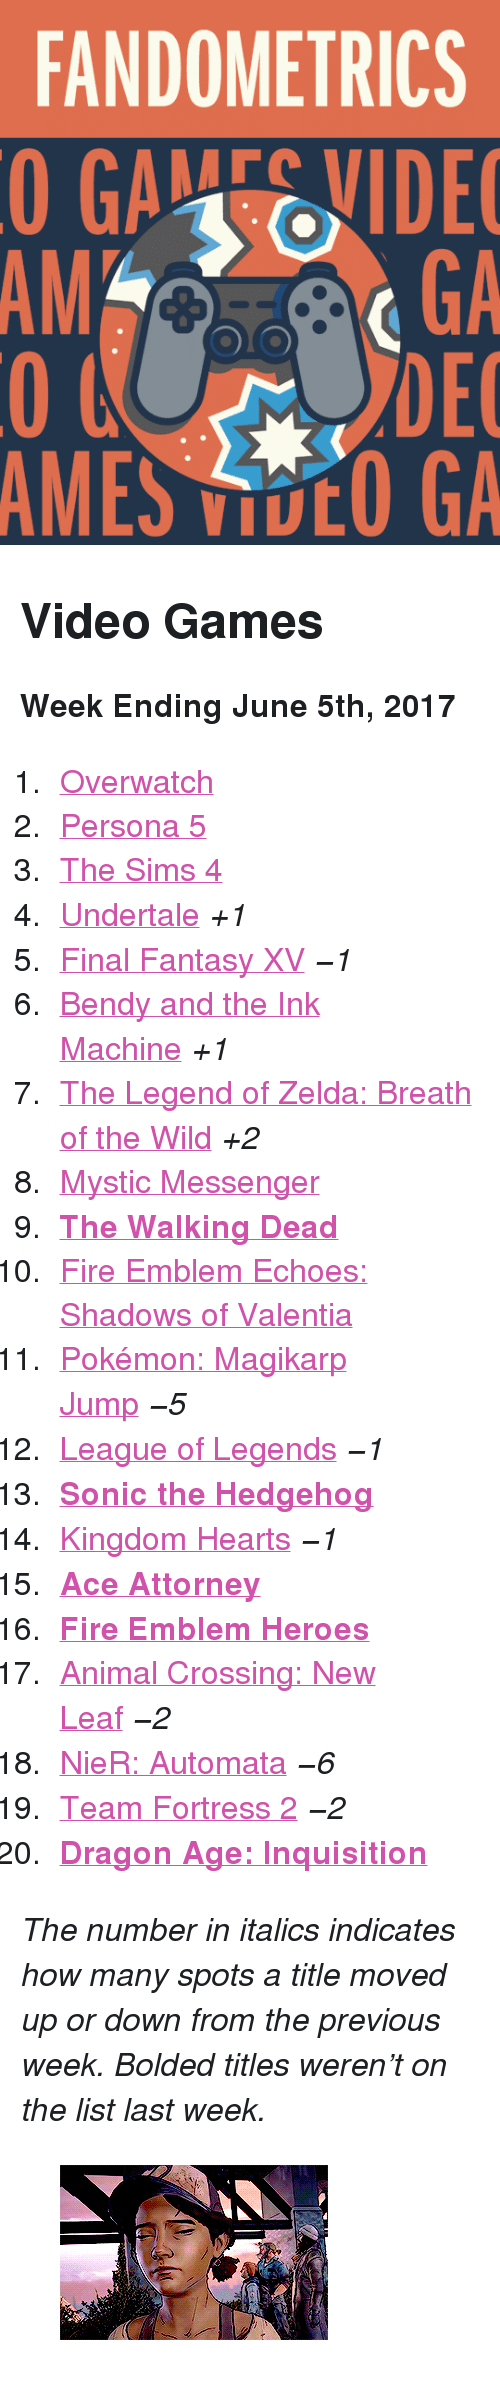 """The Legend Of Zelda Breath Of The Wild: FANDOMETRICS  GAEVIDE  GA  DEC  AMES VOO GA  AM <h2>Video Games</h2><p><b>Week Ending June 5th, 2017</b></p><ol><li><a href=""""http://tumblr.co/61328YhA8"""">Overwatch</a></li><li><a href=""""http://tumblr.co/61338YhAD"""">Persona 5</a></li><li><a href=""""http://tumblr.co/61358YhA1"""">The Sims 4</a></li><li><a href=""""http://tumblr.co/61368YhAG"""">Undertale</a><i>+1</i></li><li><a href=""""http://tumblr.co/61378YhAH"""">Final Fantasy XV</a><i><i>−1</i></i></li><li><a href=""""http://tumblr.co/61388YhAy"""">Bendy and the Ink Machine</a><i>+1</i></li><li><a href=""""http://tumblr.co/61398YhAJ"""">The Legend of Zelda: Breath of the Wild</a><i>+2</i></li><li><a href=""""http://tumblr.co/61328YhAM"""">Mystic Messenger</a></li><li><a href=""""http://tumblr.co/61338YhA3""""><b>The Walking Dead</b></a></li><li><a href=""""http://tumblr.co/61368YhAu%20+mblem+echoes"""">Fire Emblem Echoes: Shadows of Valentia</a></li><li><a href=""""http://tumblr.co/61378YhAR"""">Pokémon: Magikarp Jump</a><i><i>−5</i></i></li><li><a href=""""http://tumblr.co/61388YhAr"""">League of Legends</a><i><i>−1</i></i></li><li><a href=""""http://tumblr.co/61398YhAT""""><b>Sonic the Hedgehog</b></a></li><li><a href=""""http://tumblr.co/61308YhAp"""">Kingdom Hearts</a><i><i>−1</i></i></li><li><a href=""""http://tumblr.co/61318YhAV""""><b>Ace Attorney</b></a></li><li><a href=""""http://tumblr.co/61338YhAX""""><b>Fire Emblem Heroes</b></a></li><li><a href=""""http://tumblr.co/61348YhAk"""">Animal Crossing: New Leaf</a><i><i>−2</i></i></li><li><a href=""""http://tumblr.co/61358YhAZ"""">NieR: Automata</a><i><i>−6</i></i></li><li><a href=""""http://tumblr.co/61368YhAw"""">Team Fortress 2</a><i><i>−2</i></i></li><li><a href=""""http://tumblr.co/61378YhAb""""><b>Dragon Age: Inquisition</b></a></li></ol><p><i>The number in italics indicates how many spots a title moved up or down from the previous week. Bolded titles weren't on the list last week.</i></p><figure class=""""tmblr-full"""" data-orig-height=""""175"""" data-orig-width=""""268"""" data-tumblr-attribution=""""clemjavier:gbs1fCllczpaO_CErEIqqA:ZD"""